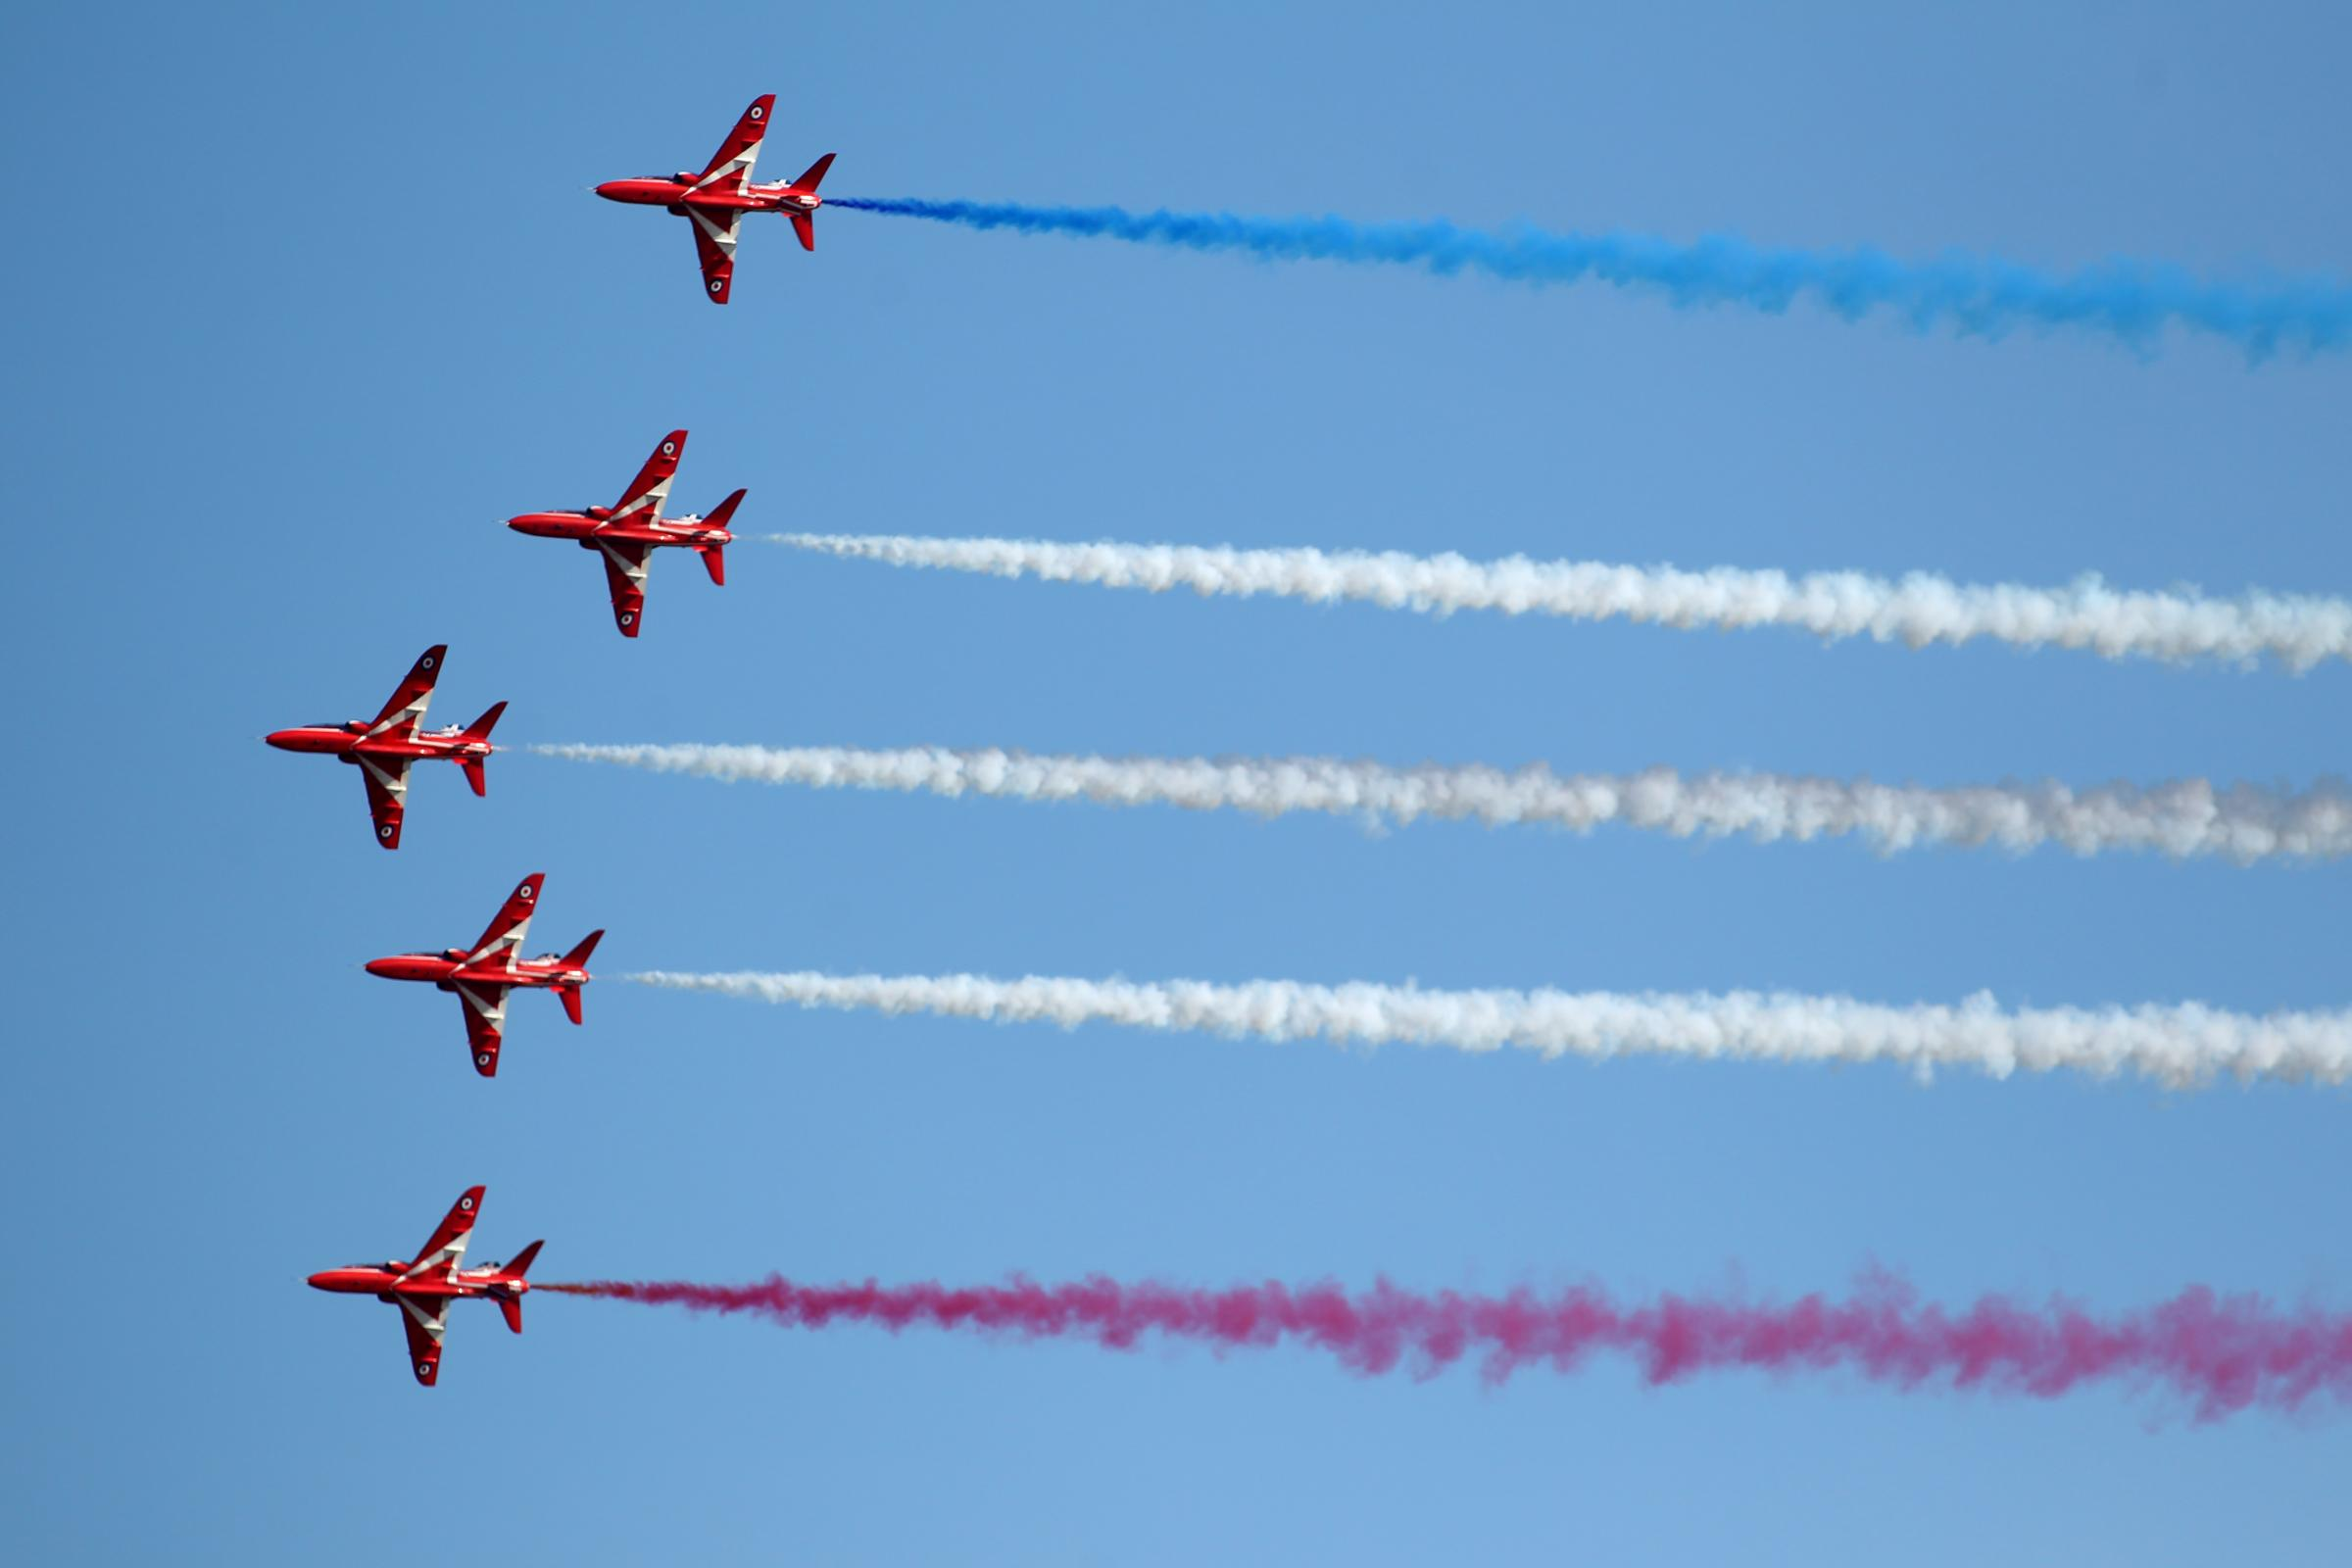 The Red Arrows put on an impressive show over the New Forest.